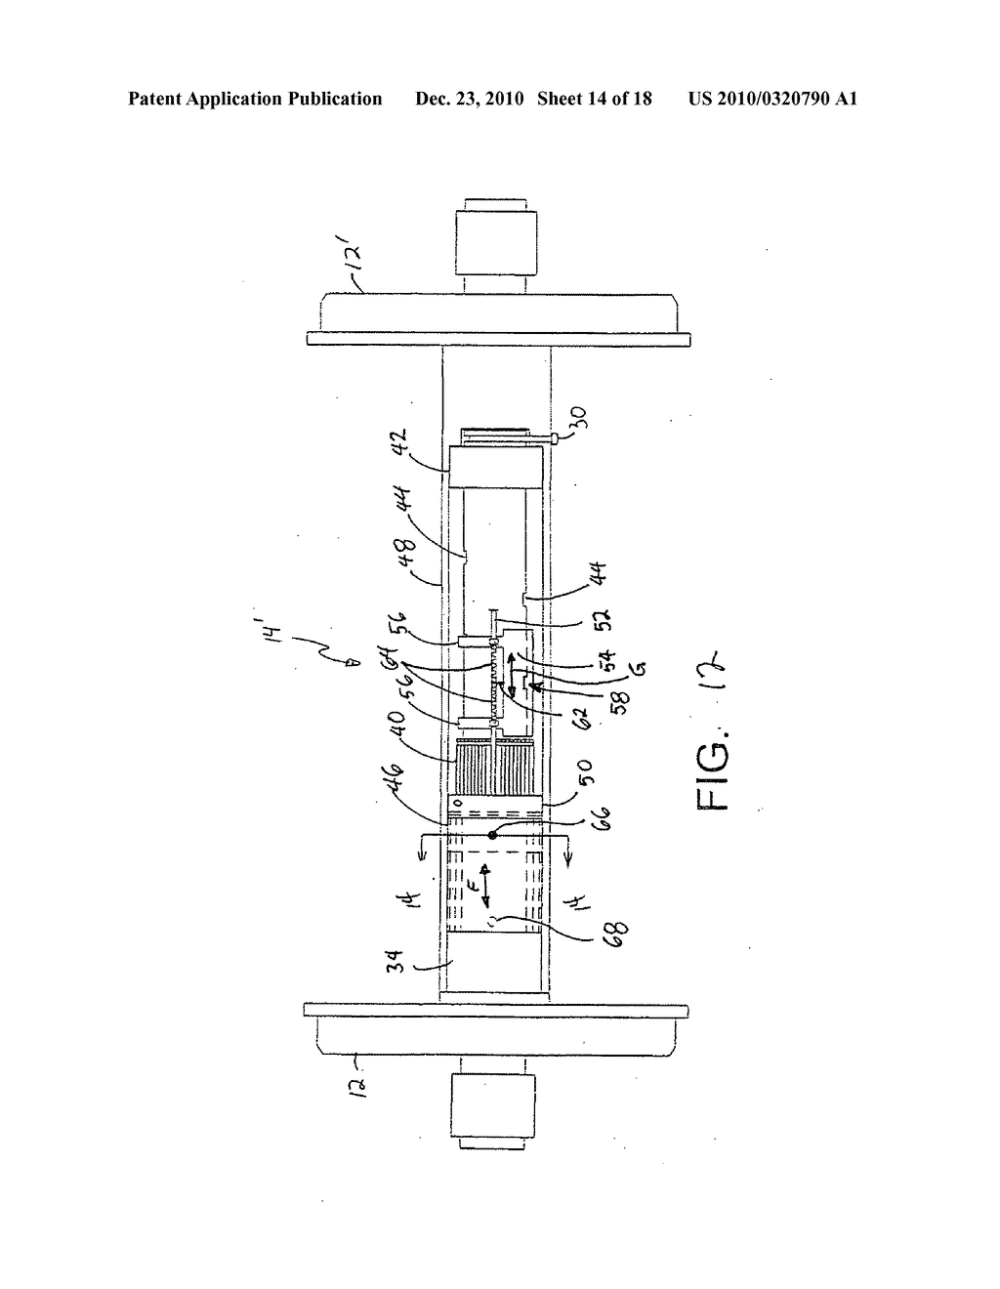 medium resolution of railway car independent axles with axle locking mechanism diagram schematic and image 15